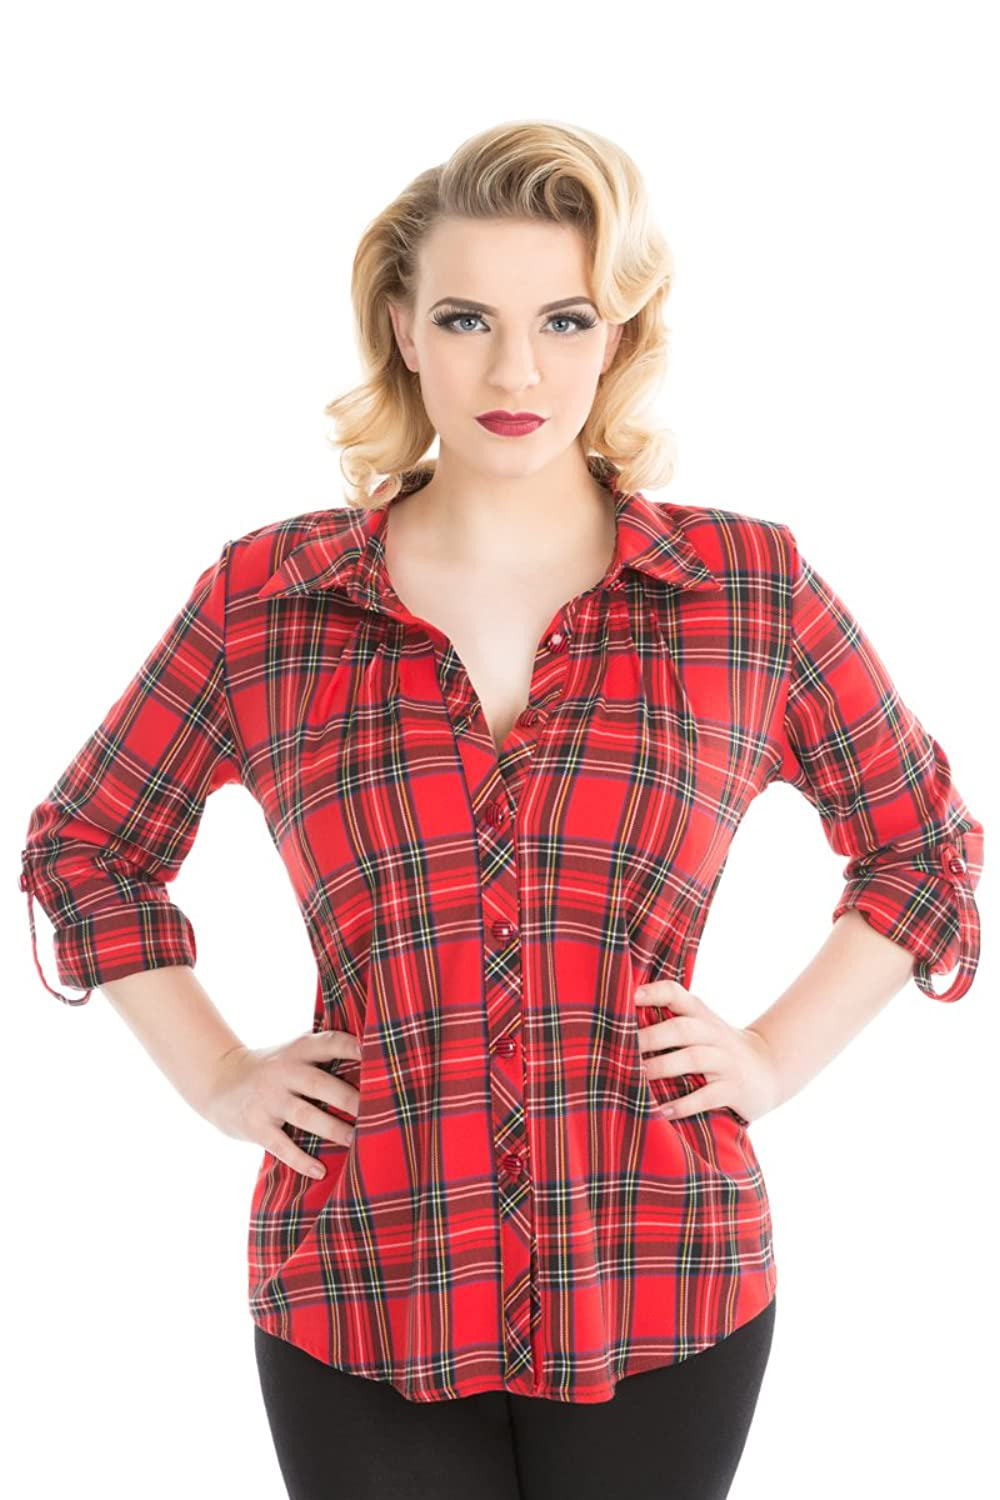 Rockabilly Dresses | Rockabilly Clothing | Viva Las Vegas hearts and Roses Clothing Tartan Shirt In Red (Shipped From The US and US Sizes) $29.88 AT vintagedancer.com